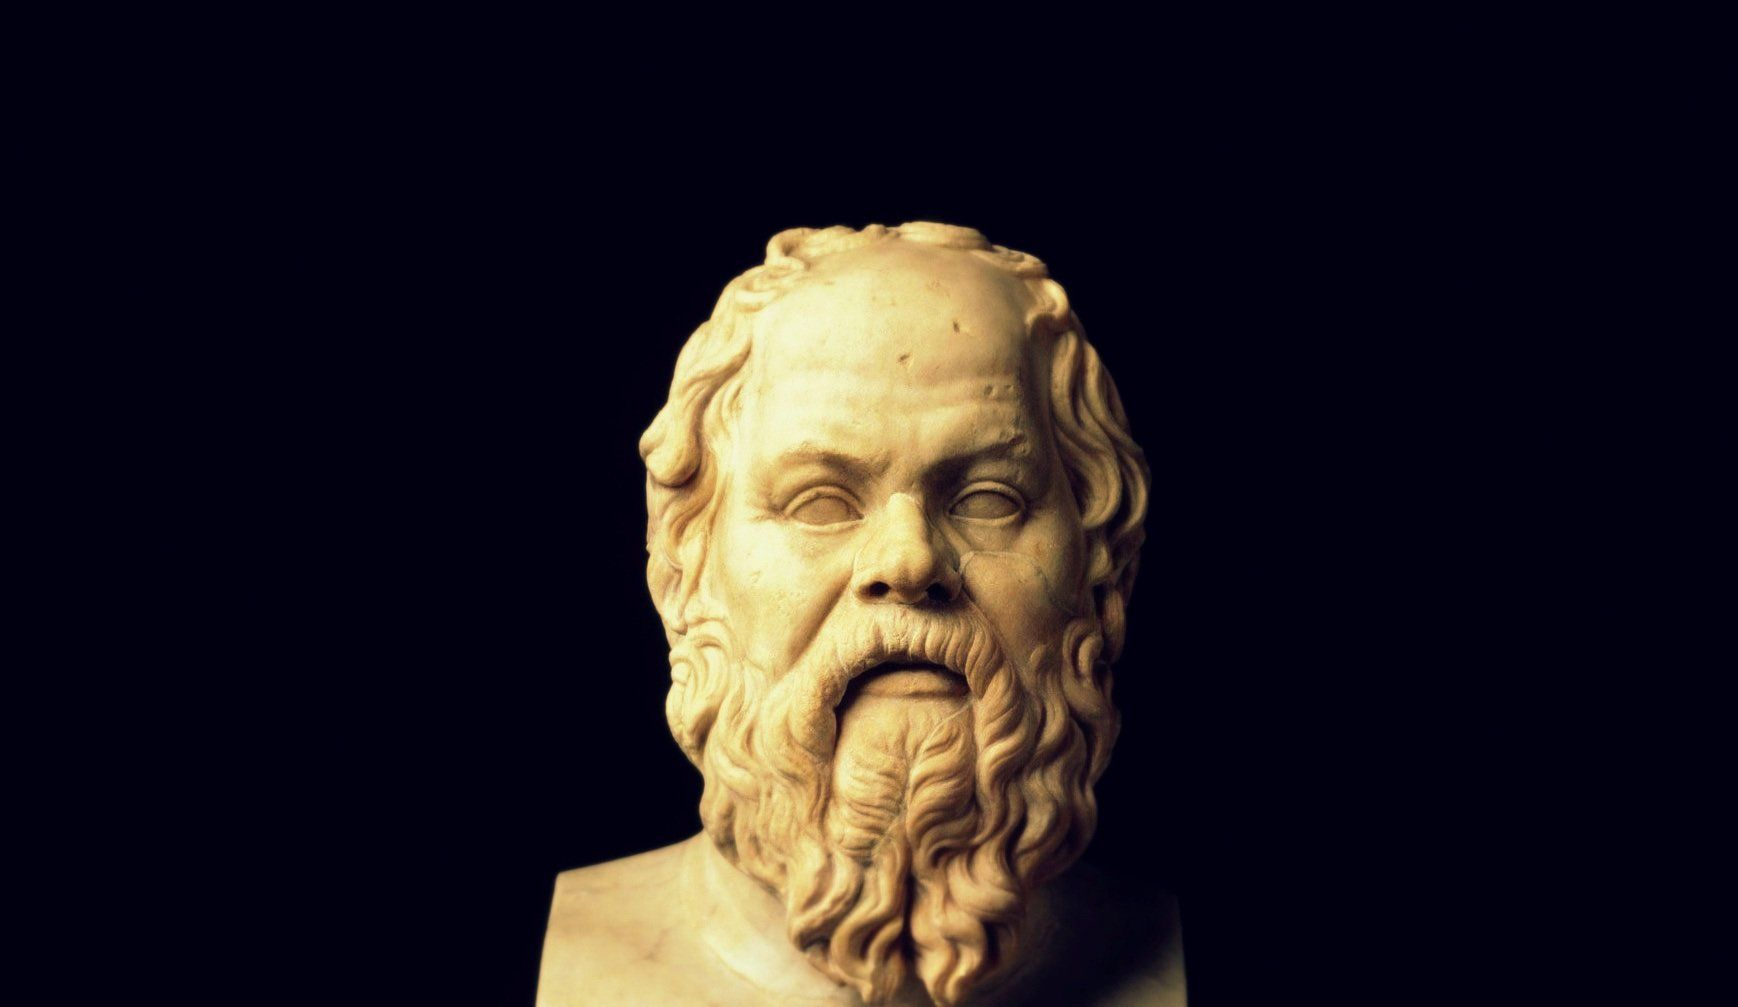 Quotes From Socrates That Are Full Of Wisdom in 2020 ...